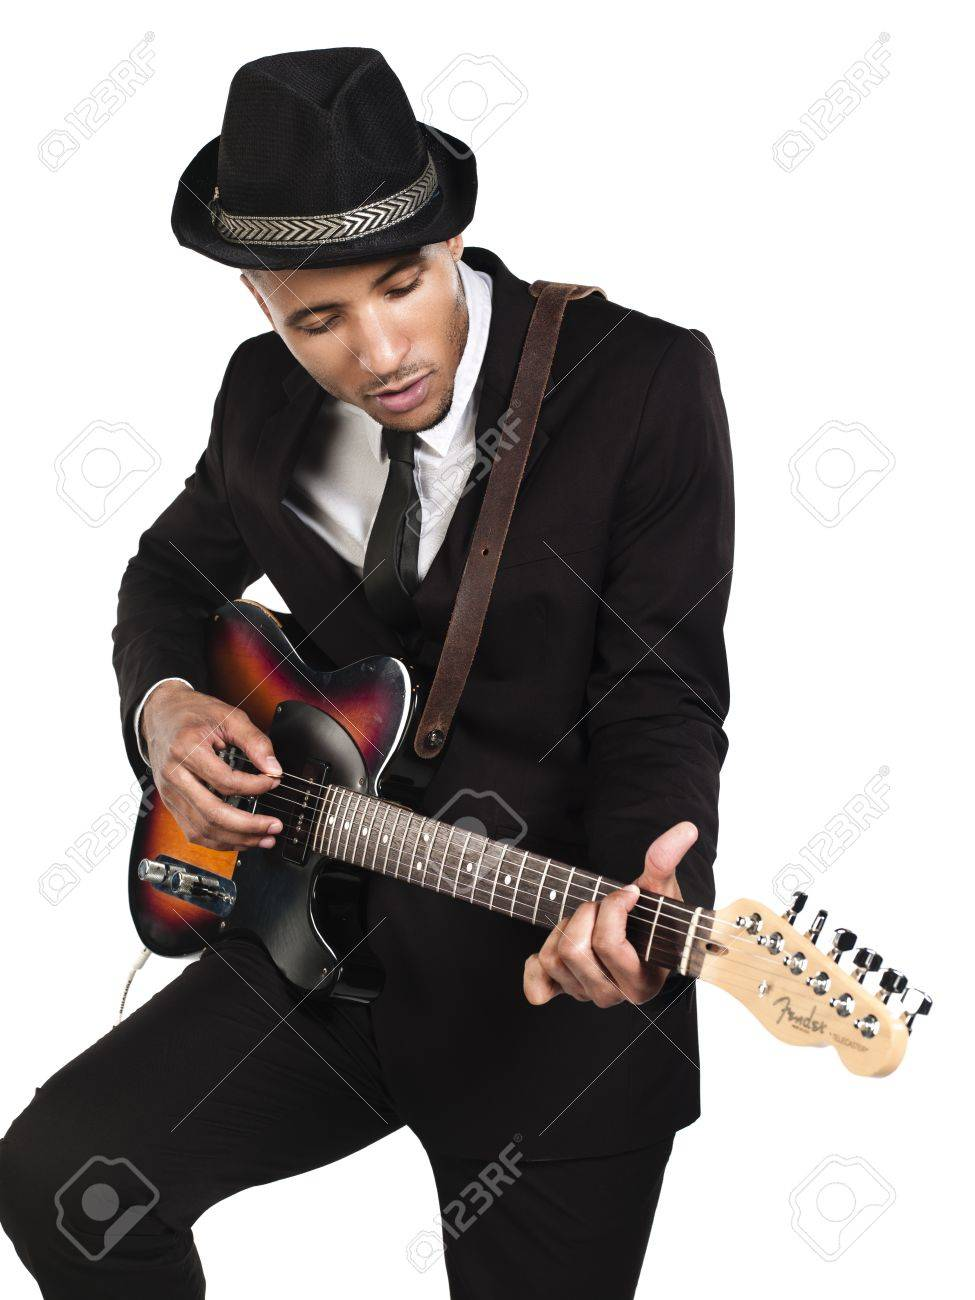 African American young businessman playing guitar over white background, Model: Kareem Duhaney Stock Photo - 17110683